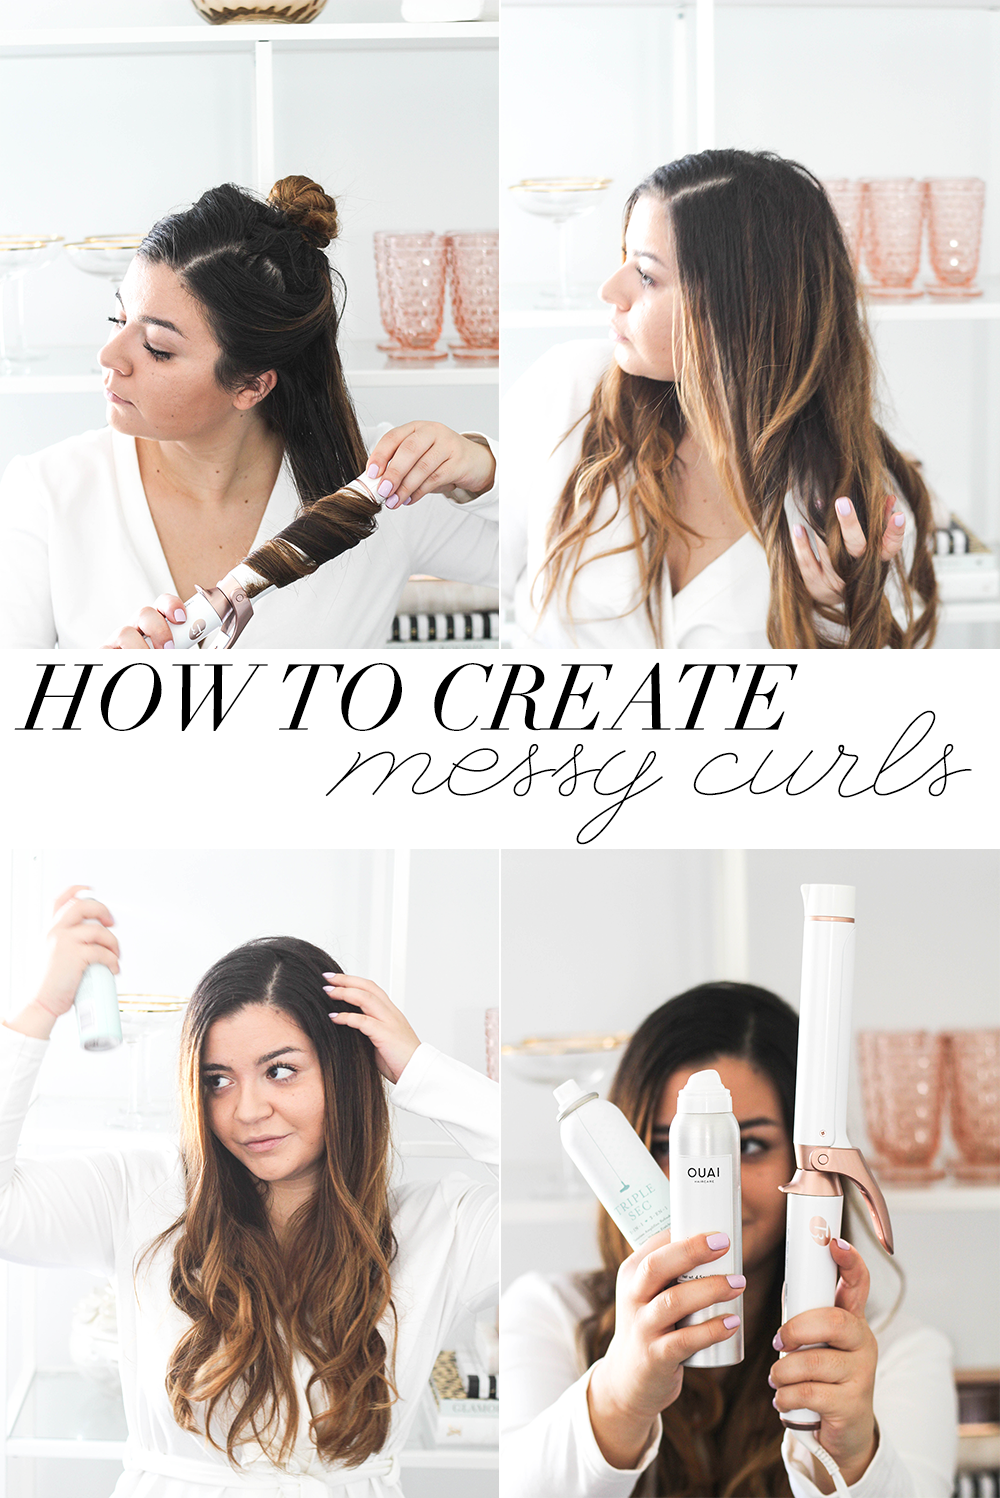 How To Create Messy Curls - Money Can Buy Lipstick